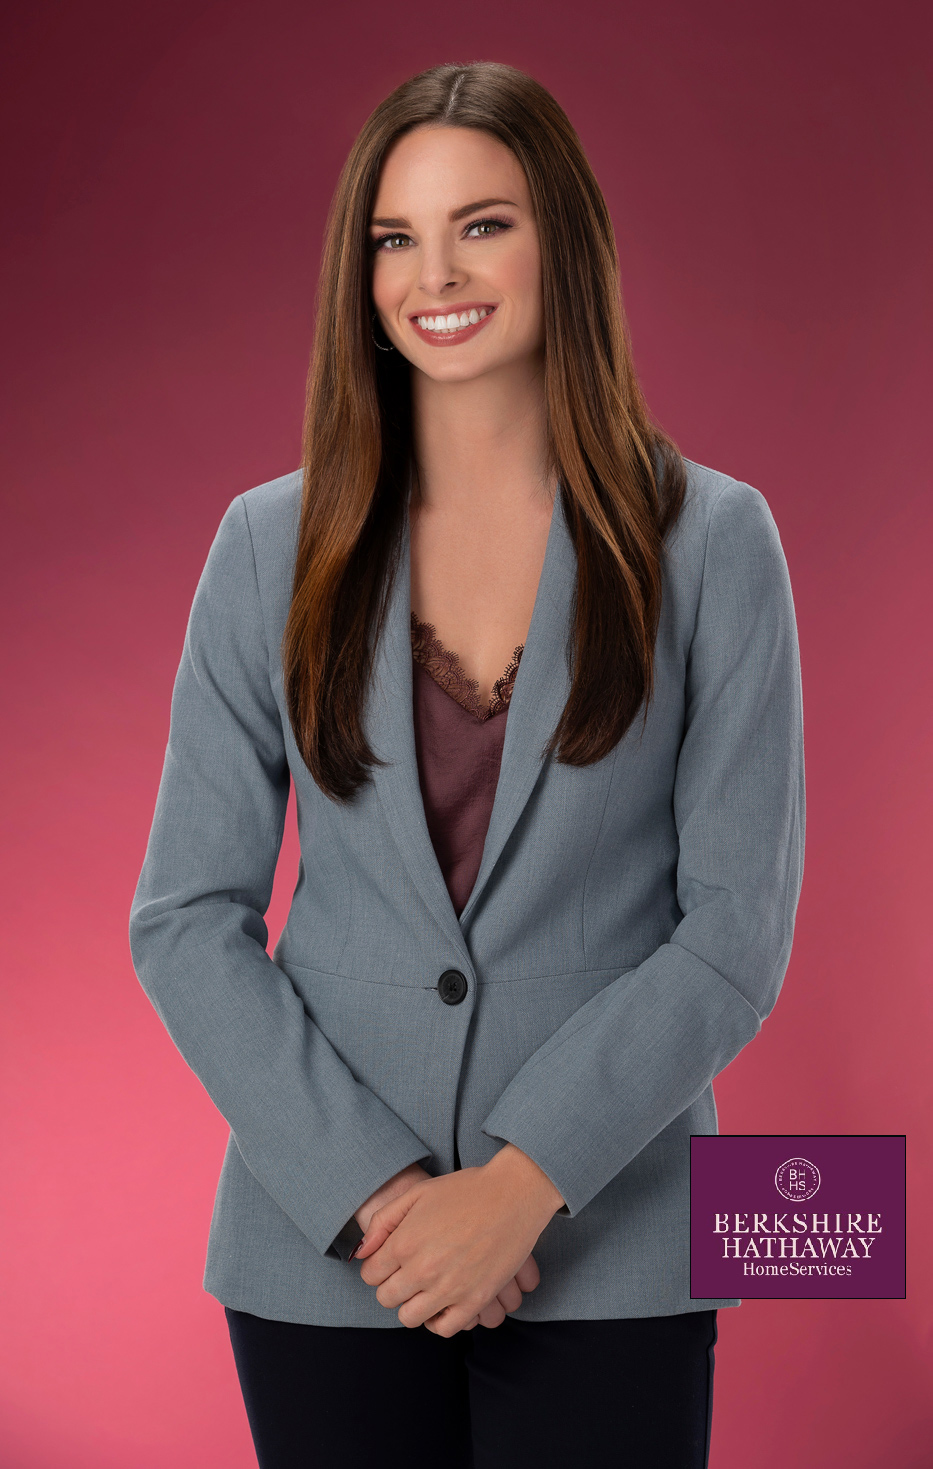 realtor headshot of a real estate agent in Michigan